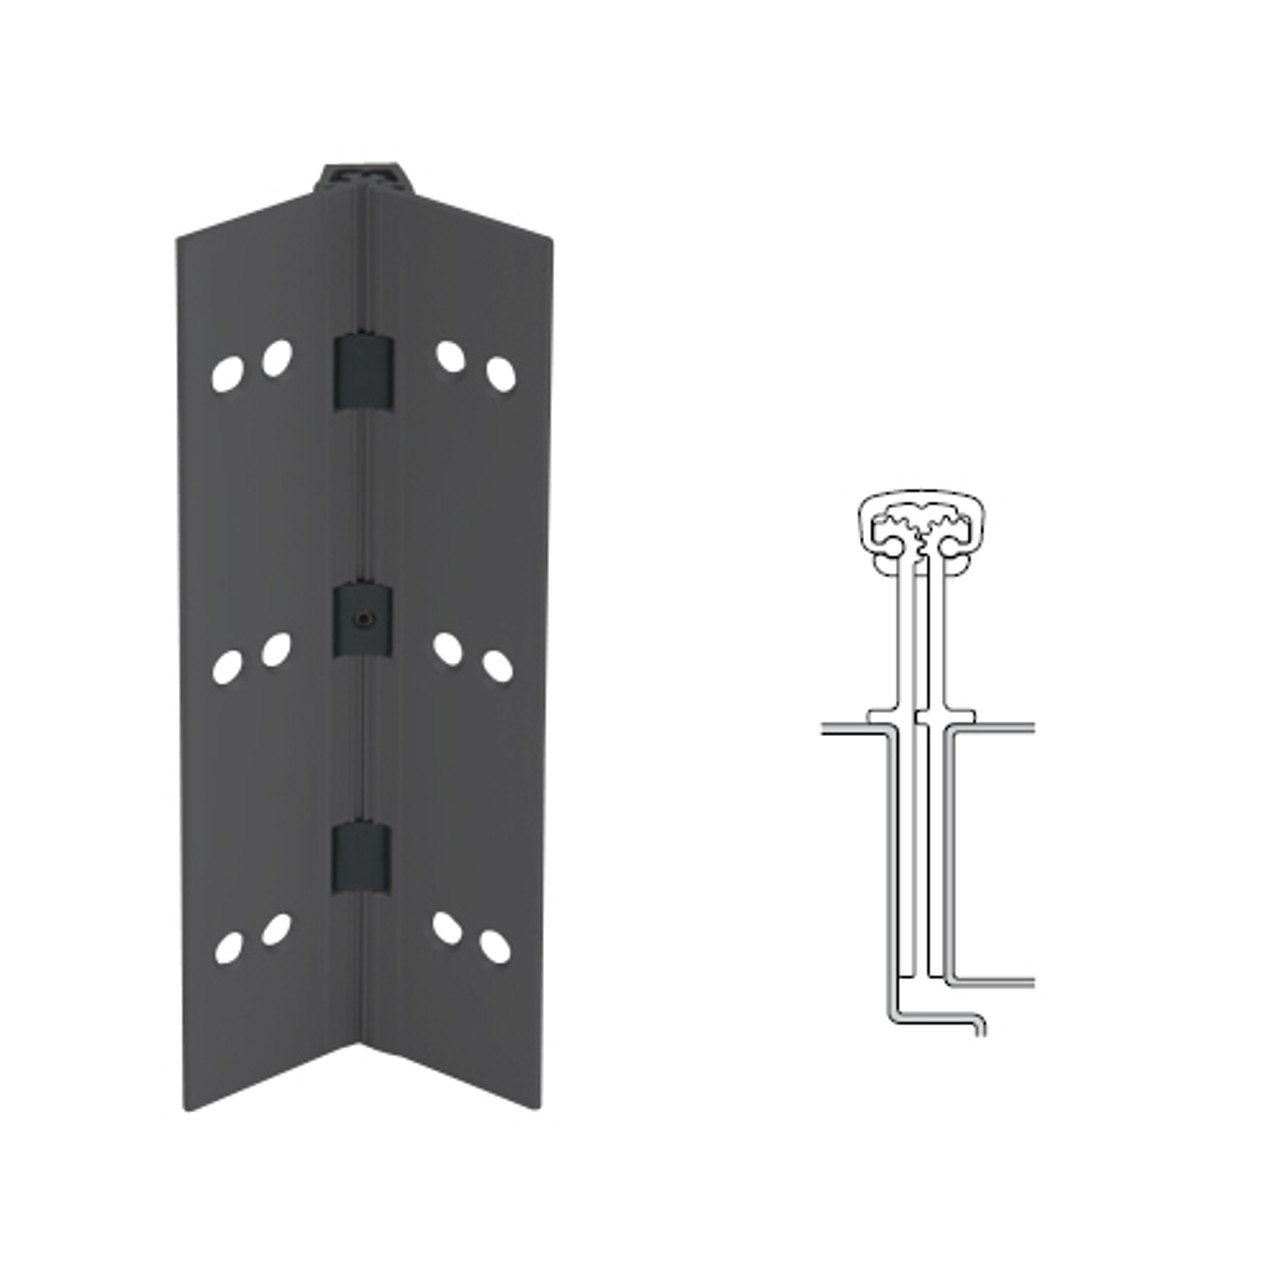 040XY-315AN-83-SECWDHM IVES Full Mortise Continuous Geared Hinges with Security Screws - Hex Pin Drive in Anodized Black